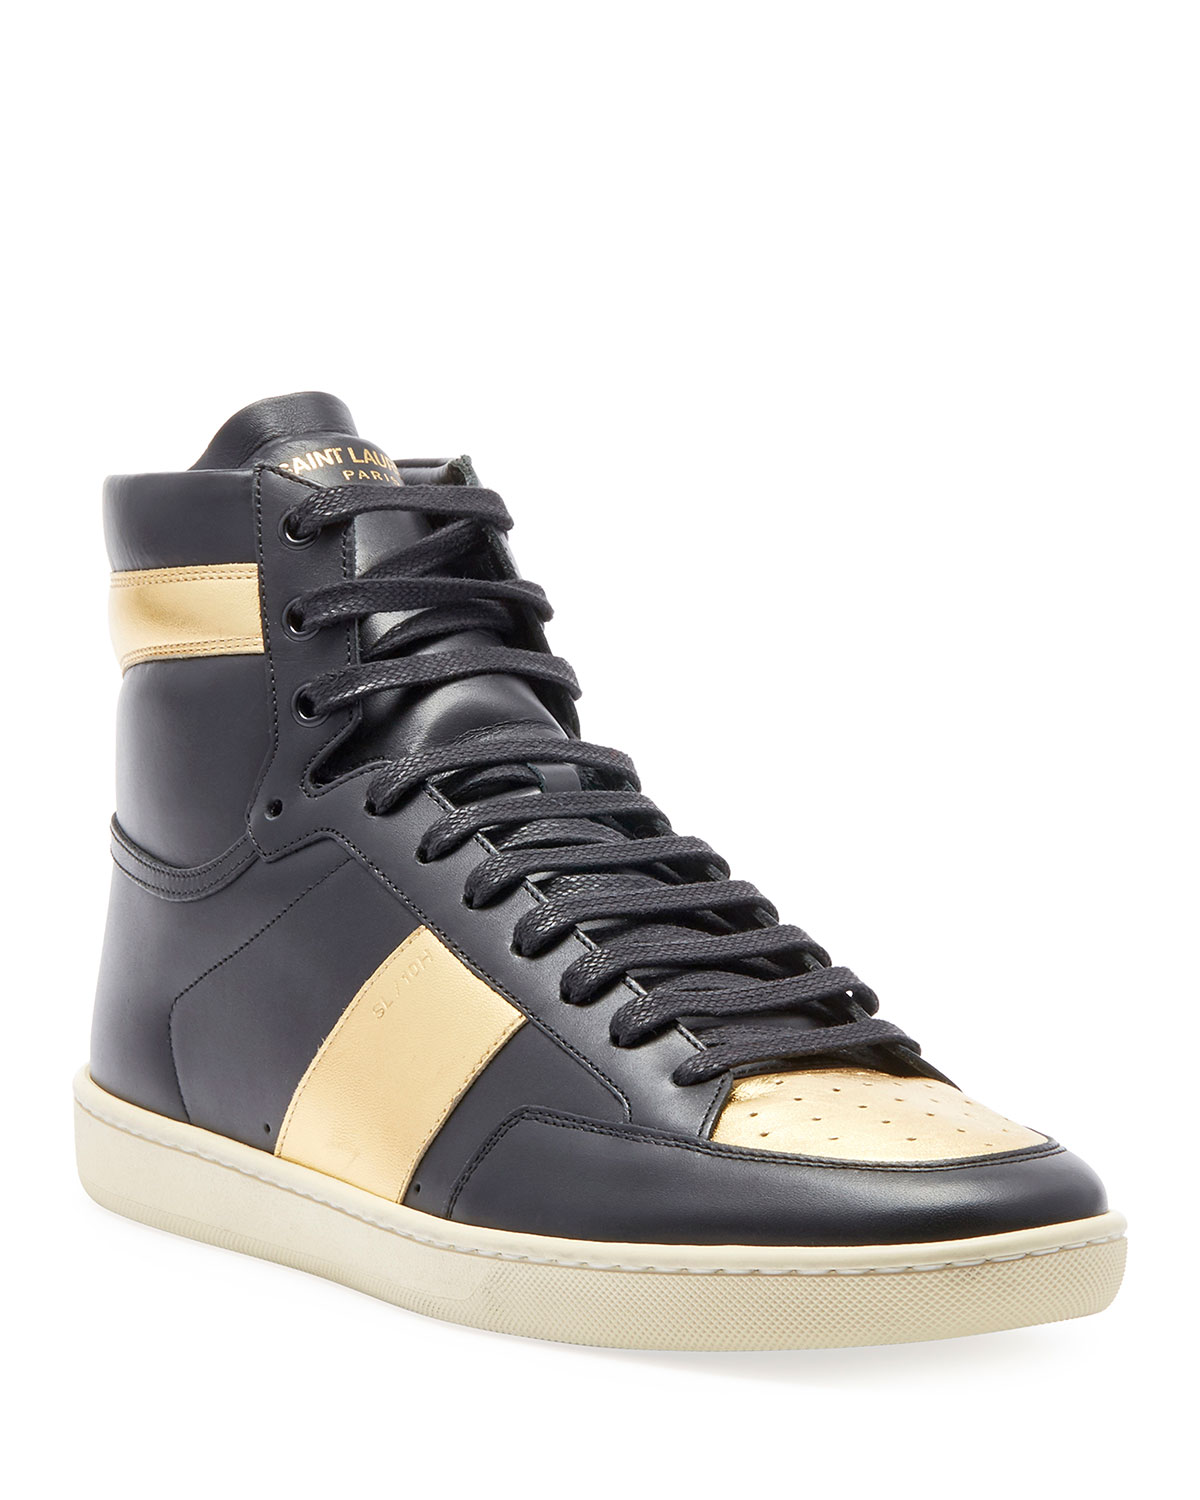 a3db845fdd27 Saint Laurent Men s Metallic High-Top Sneakers